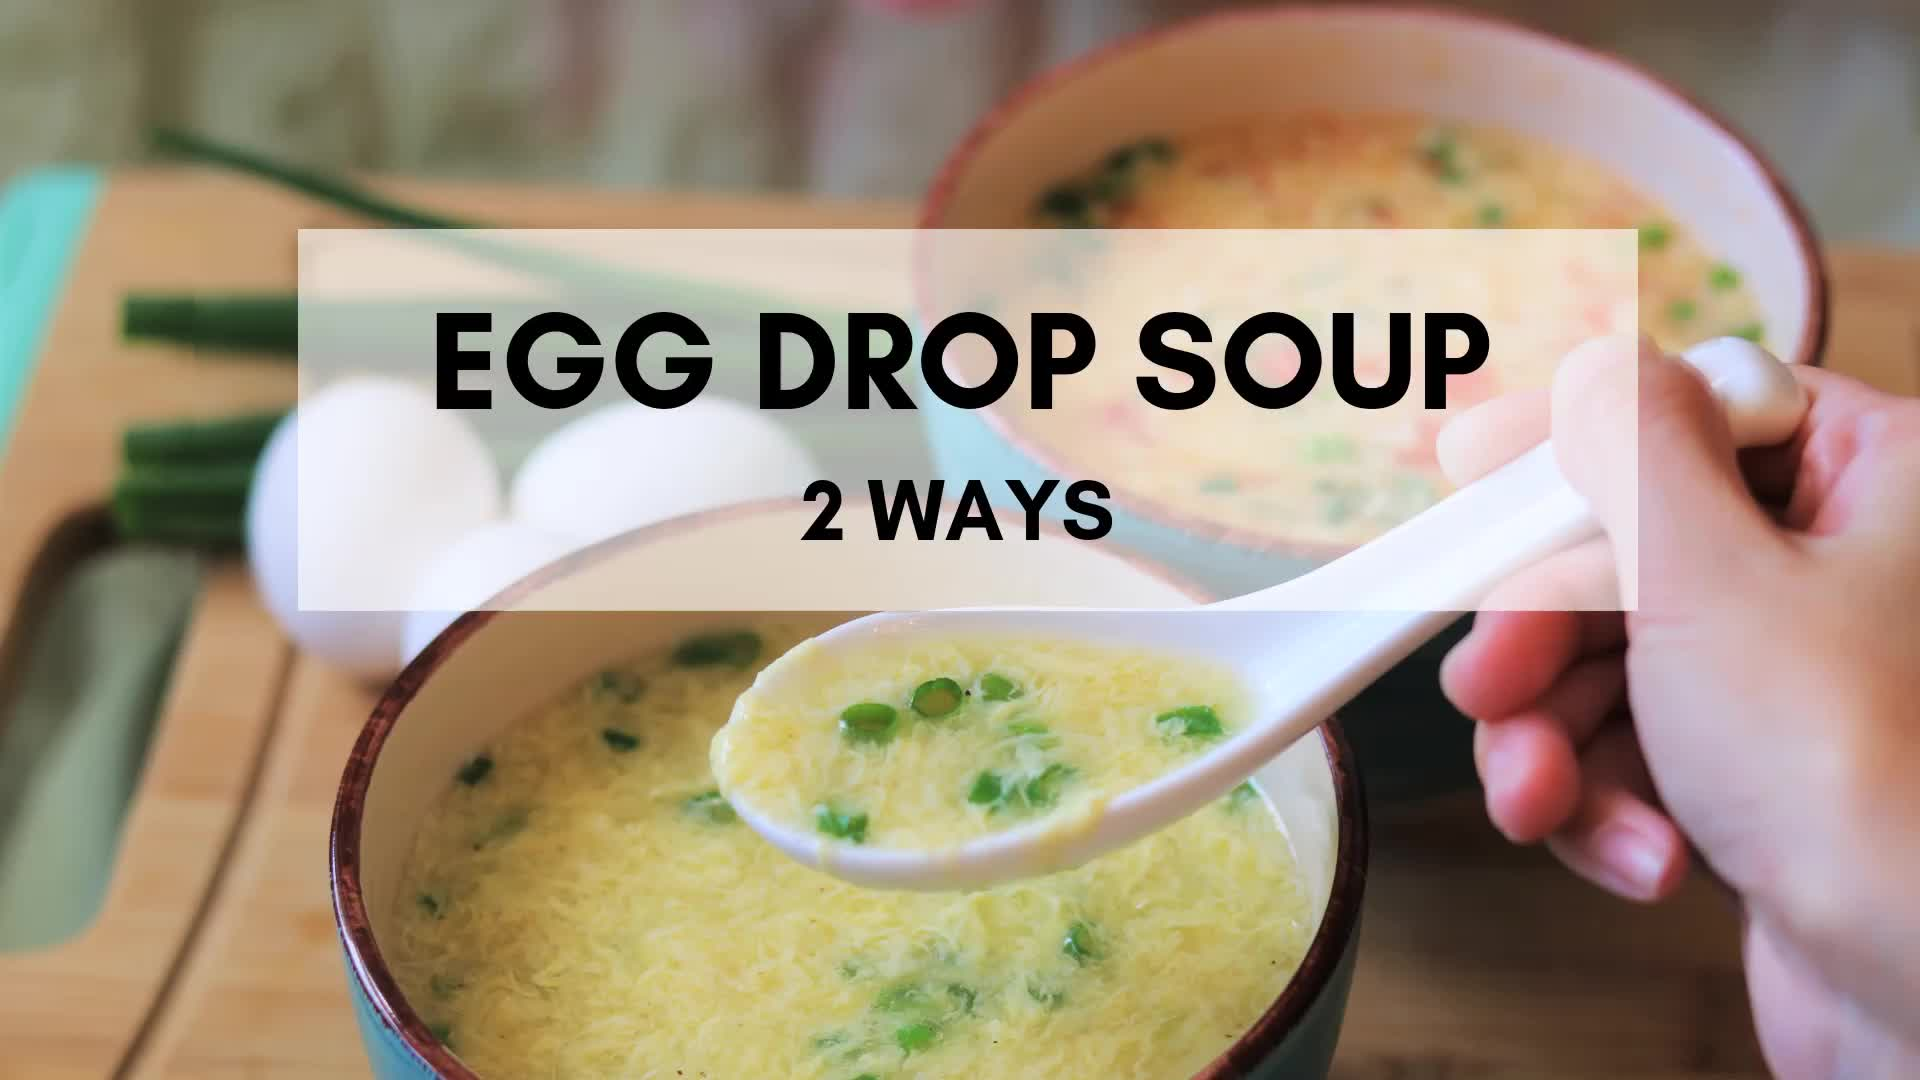 cooking, food, food recipes, recipe, recipes, How-to-make-egg-drop-soup-tomato-egg-flower-soup-recipes-gif GIFs